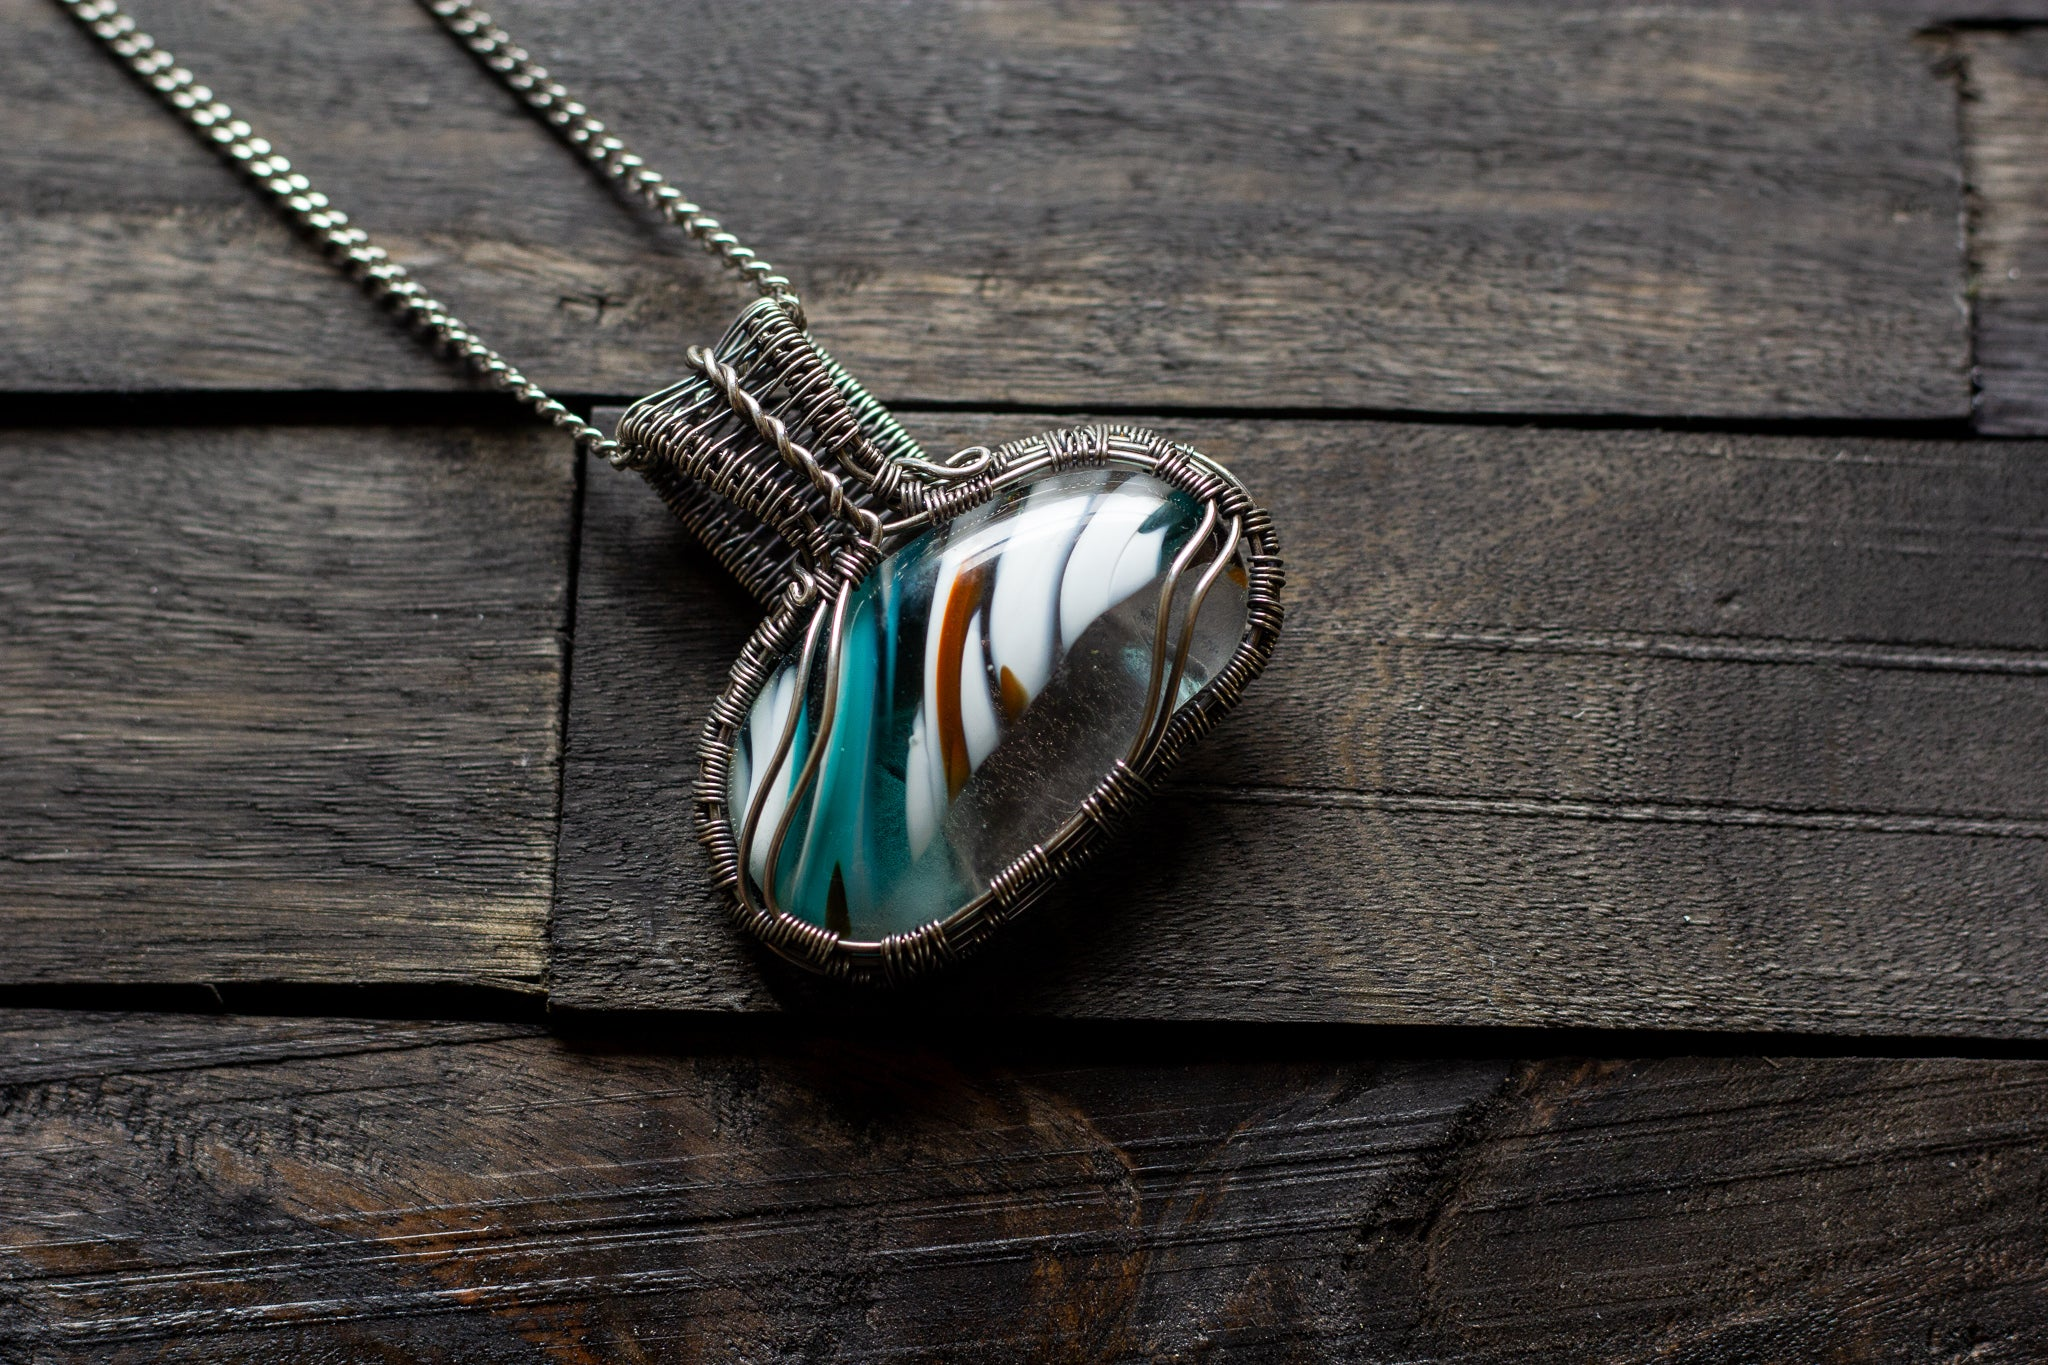 Streaked Blue, Orange and White Fused Glass Pendant with Sterling Silver Wire Wrapping